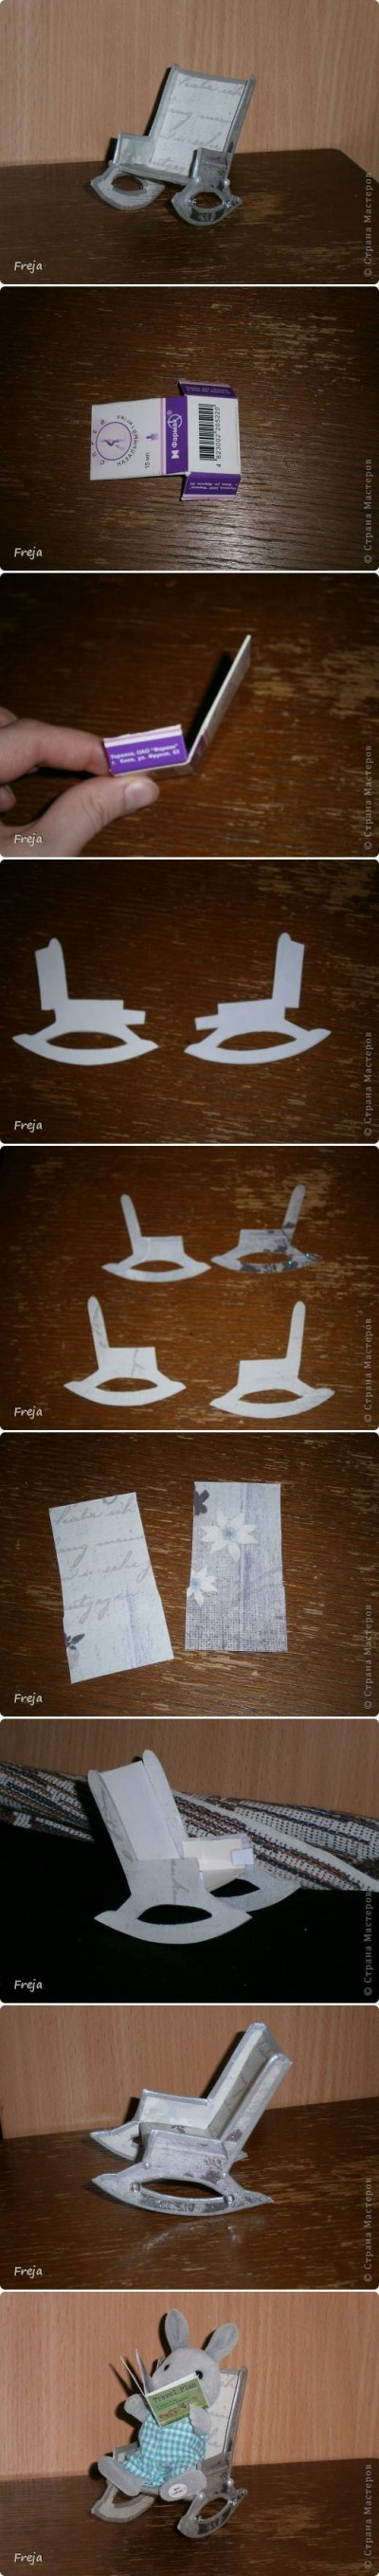 How to make Cardboard Rocking Chair step by step DIY instructions